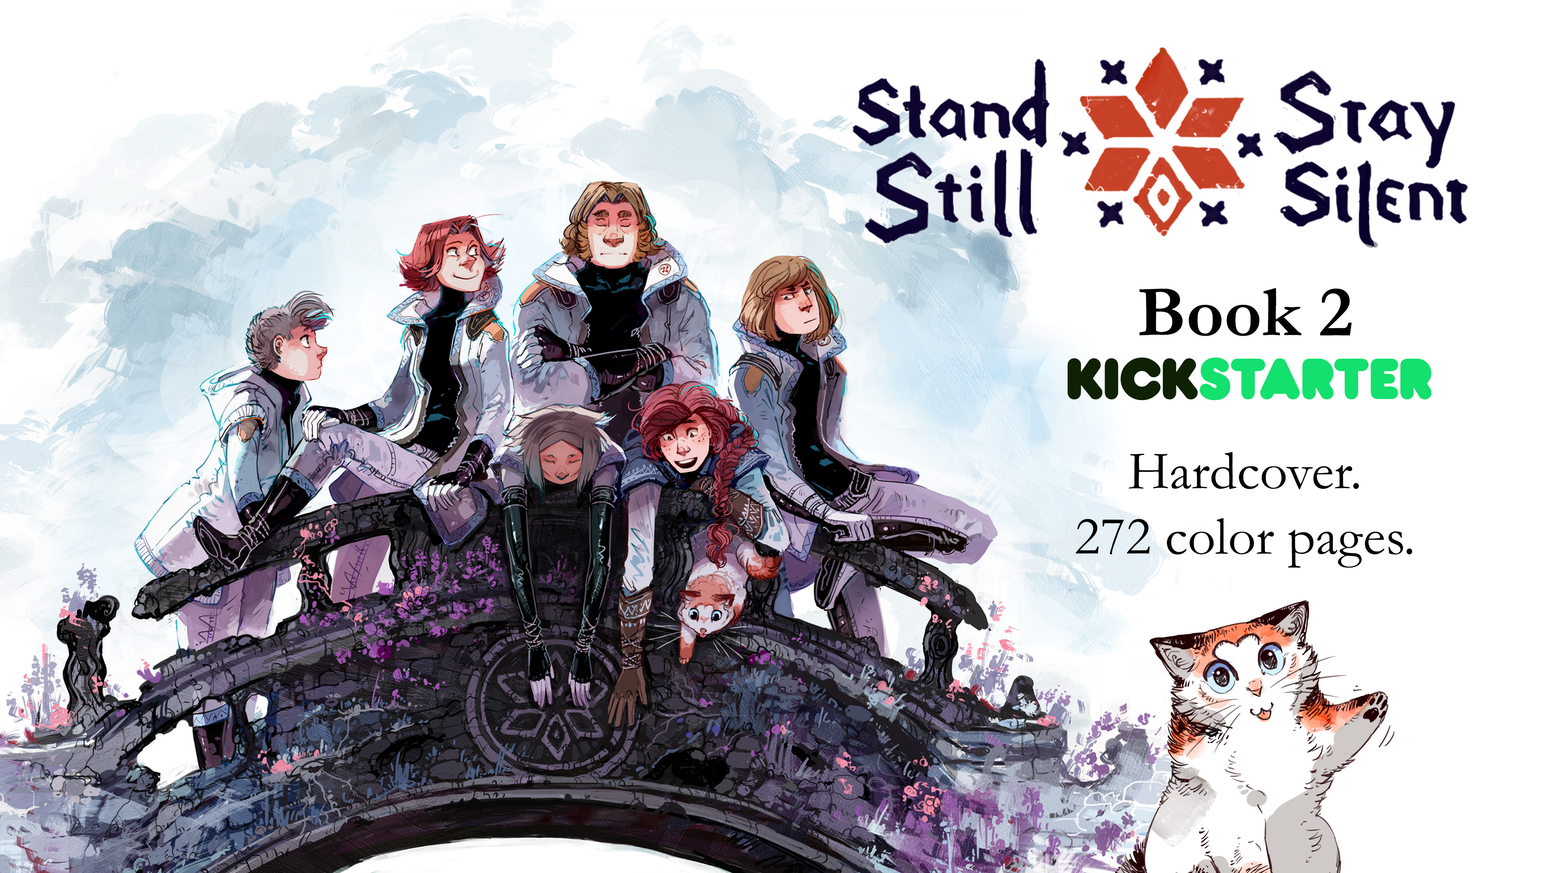 Stand Still Stay Silent - Book 2